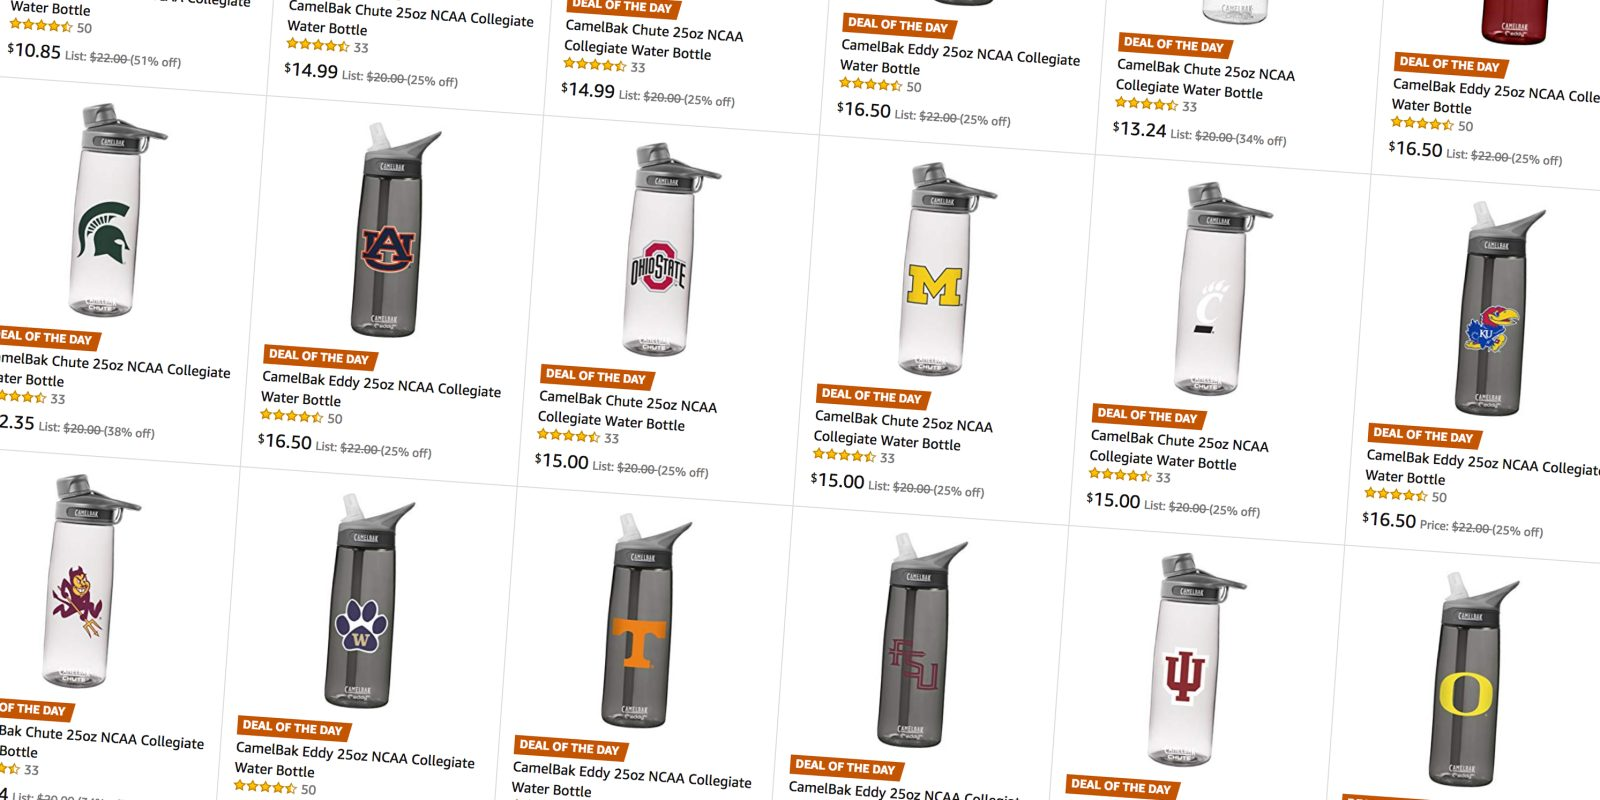 3f3eb71db5 Amazon has a number of CamelBak 25-oz. NCAA Water Bottles on sale from $11